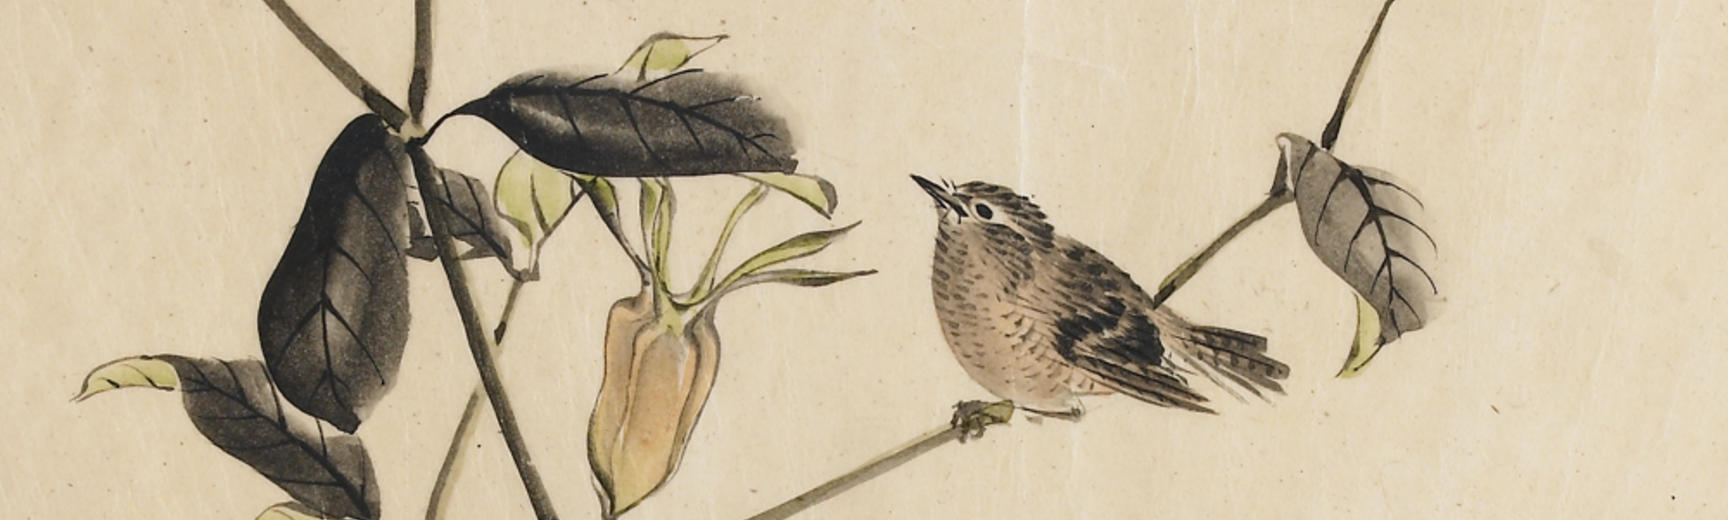 Sparrow on an akebi plant, by Kunii Obun